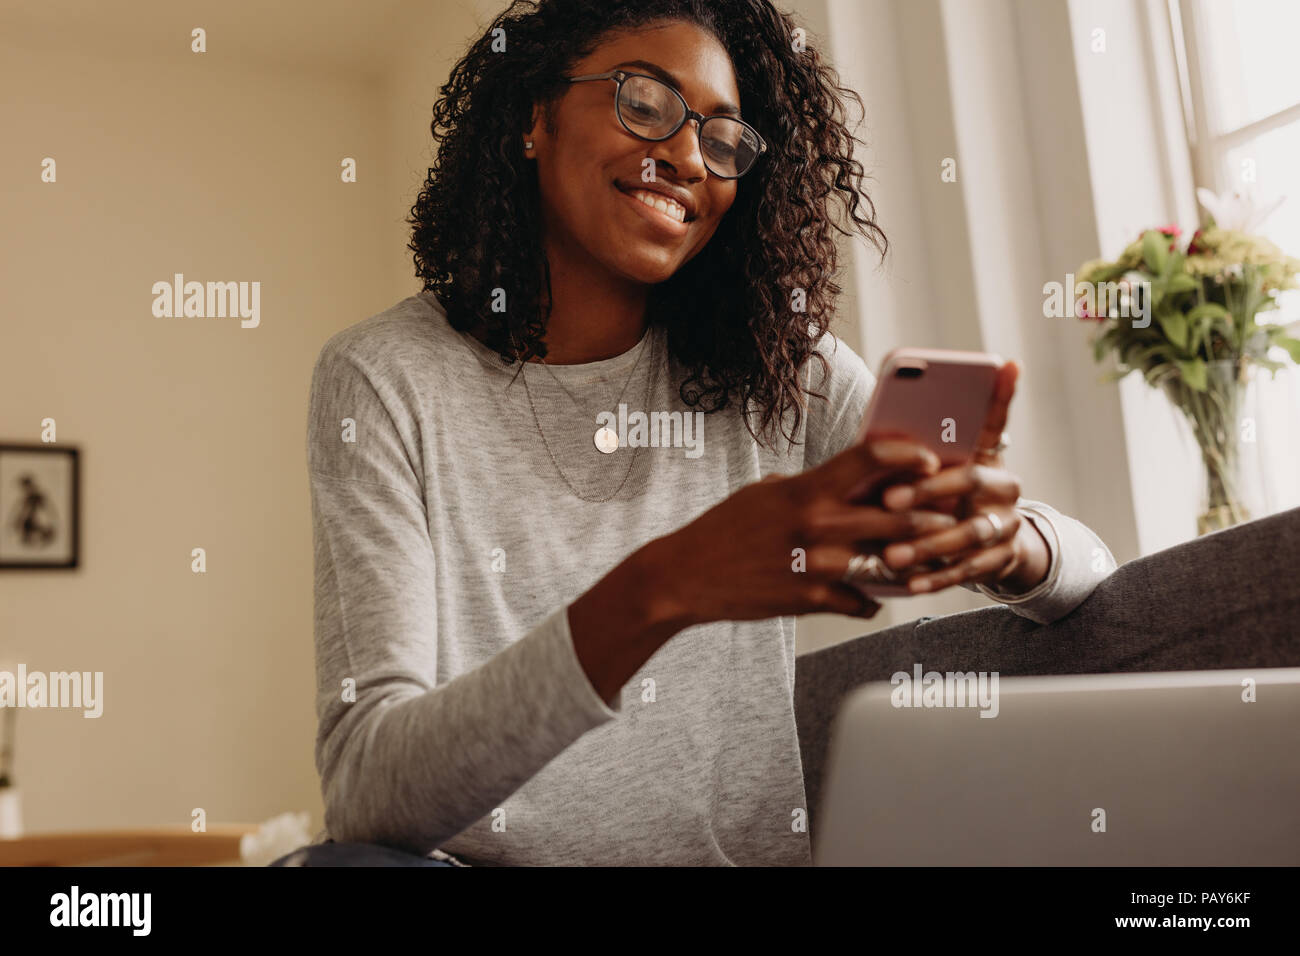 Smiling businesswoman sitting on sofa at home using mobile phone while working on laptop. Woman working on laptop computer at home and managing her bu - Stock Image